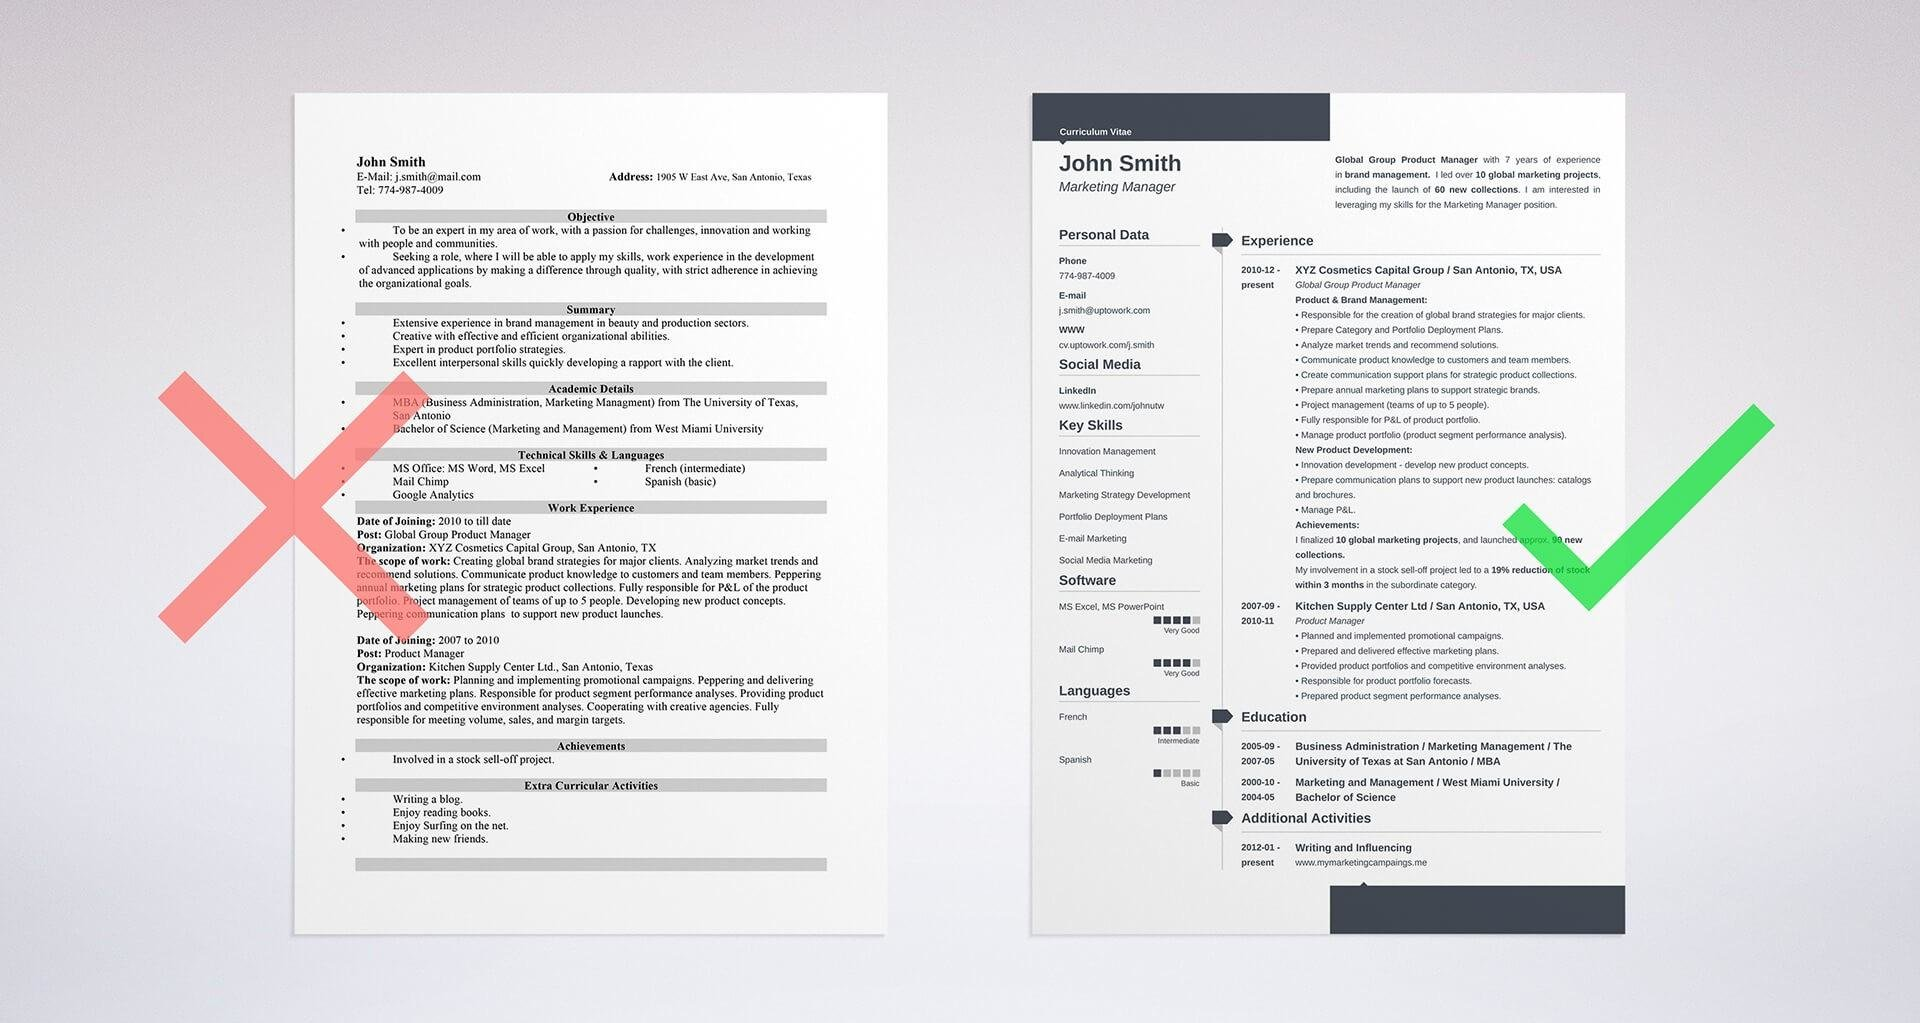 20 resume objective examples use them on your resume tips - Bjective Resume Examples